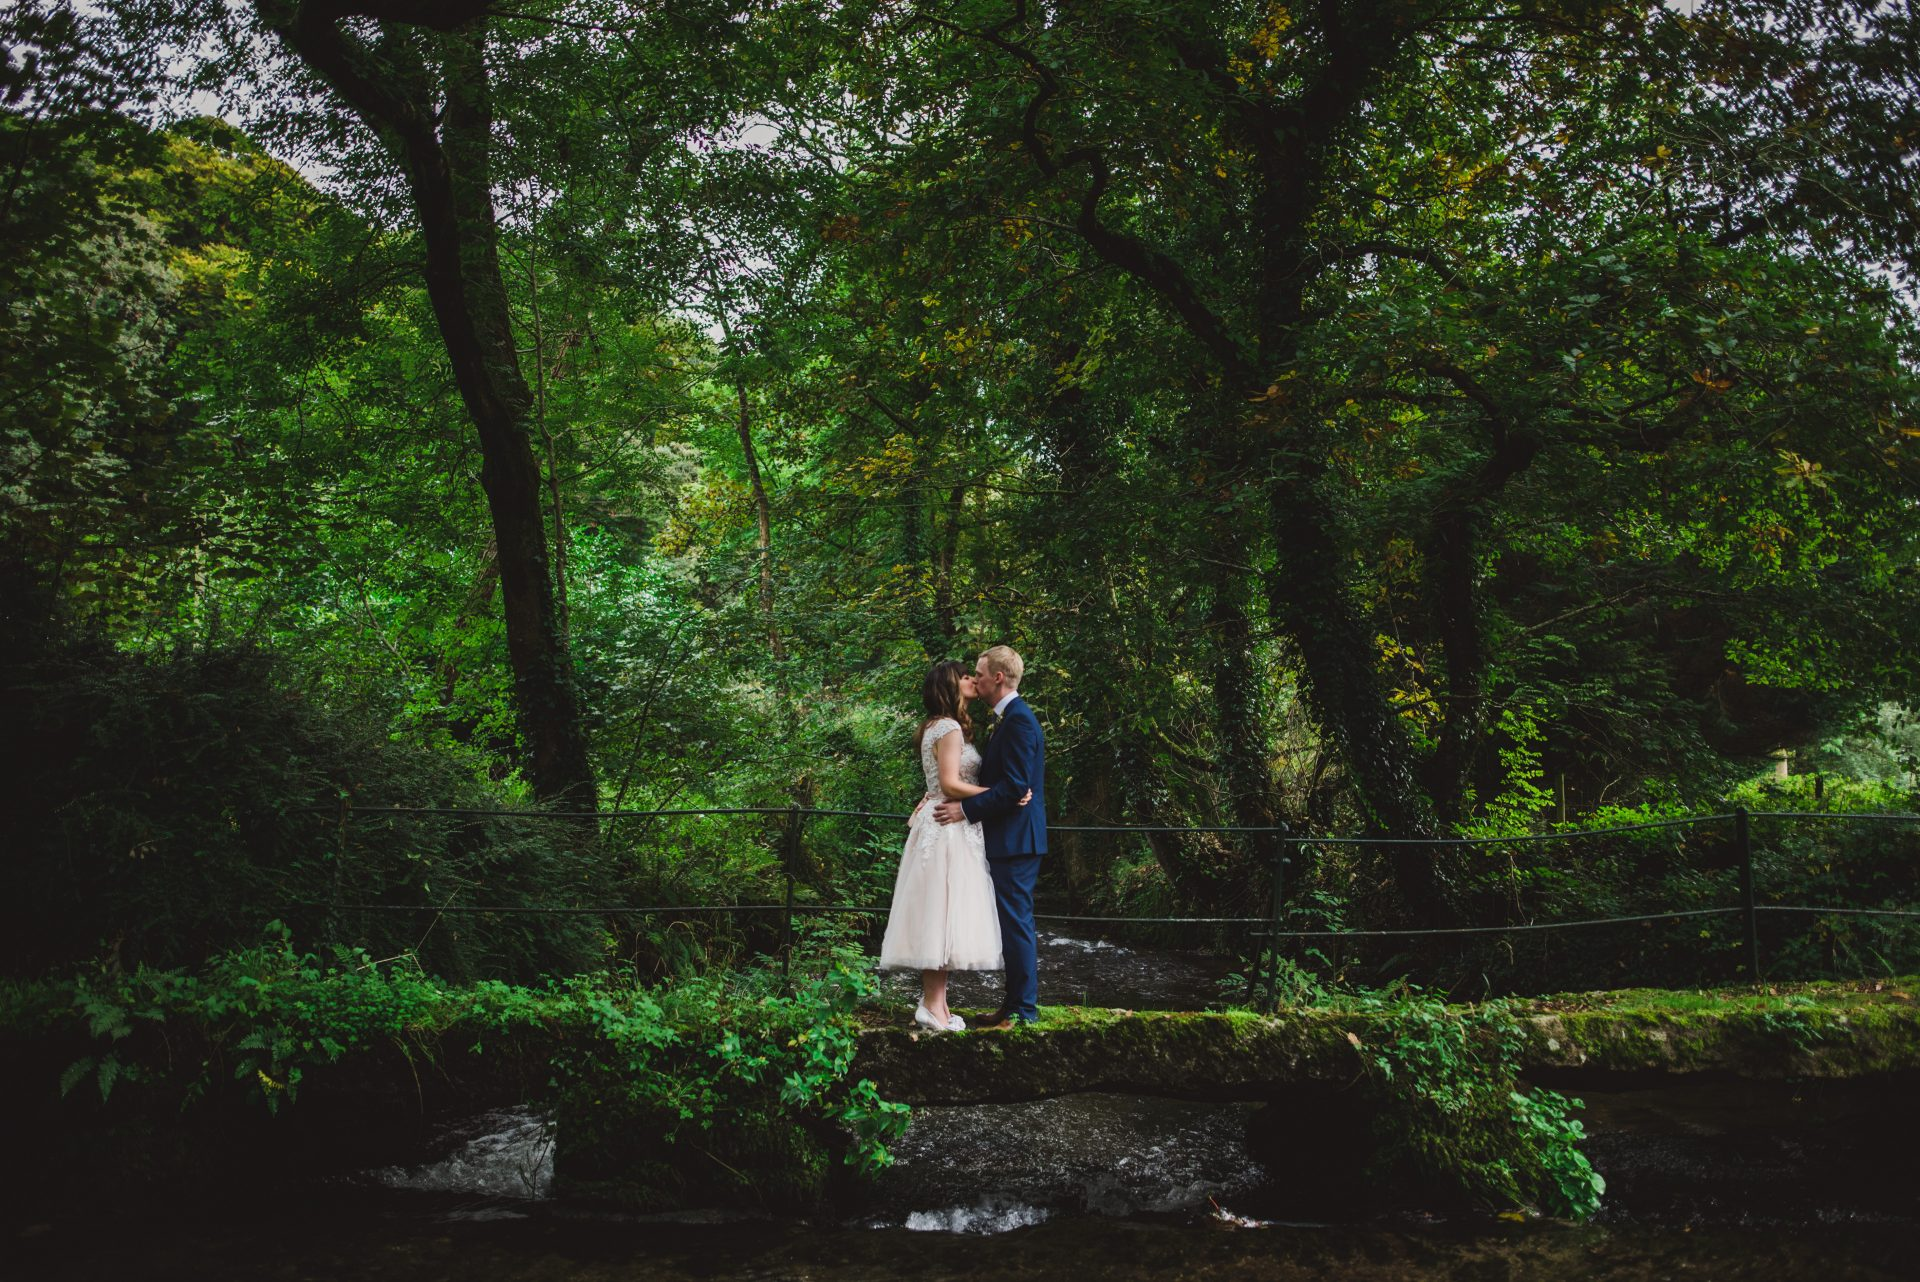 Pengenna Manor Wedding Photography - Stewart Girvan